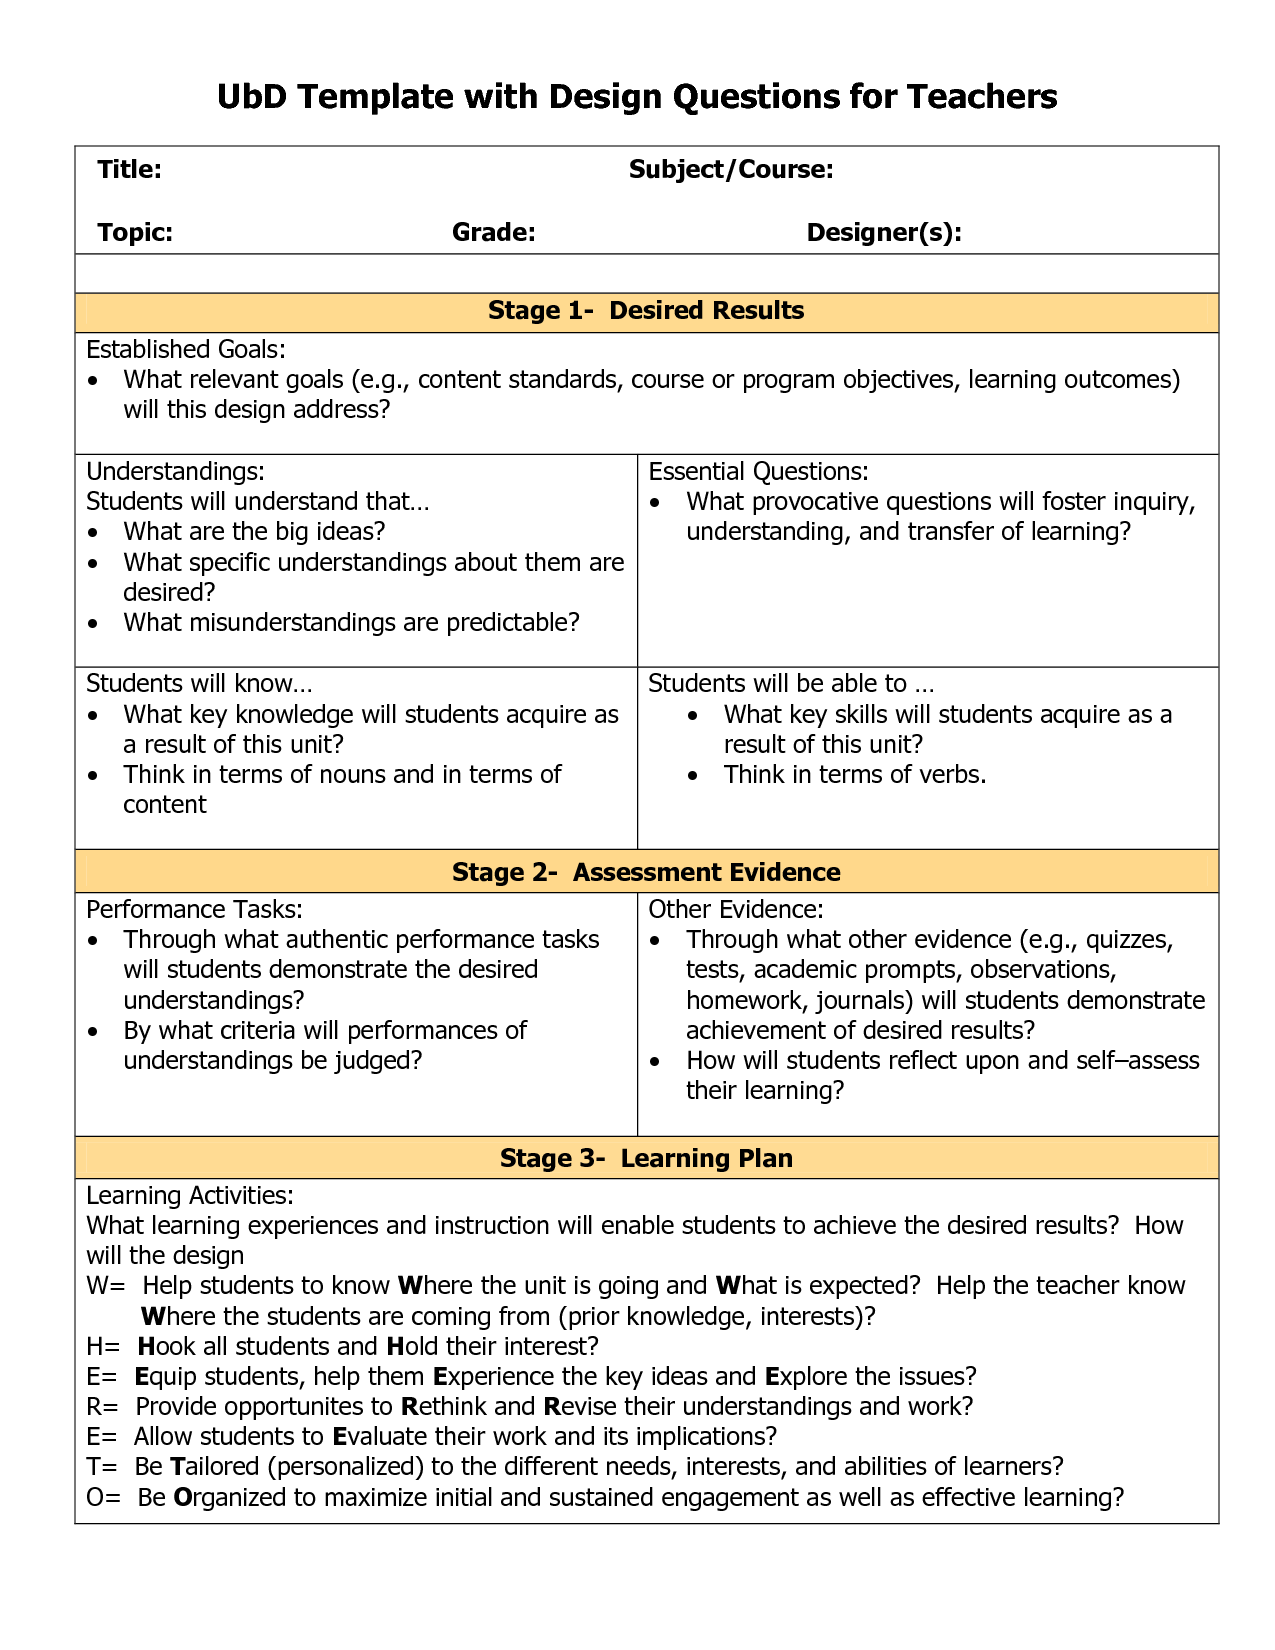 Classroom Curriculum Design ~ Blank ubd template things for the classroom pinterest